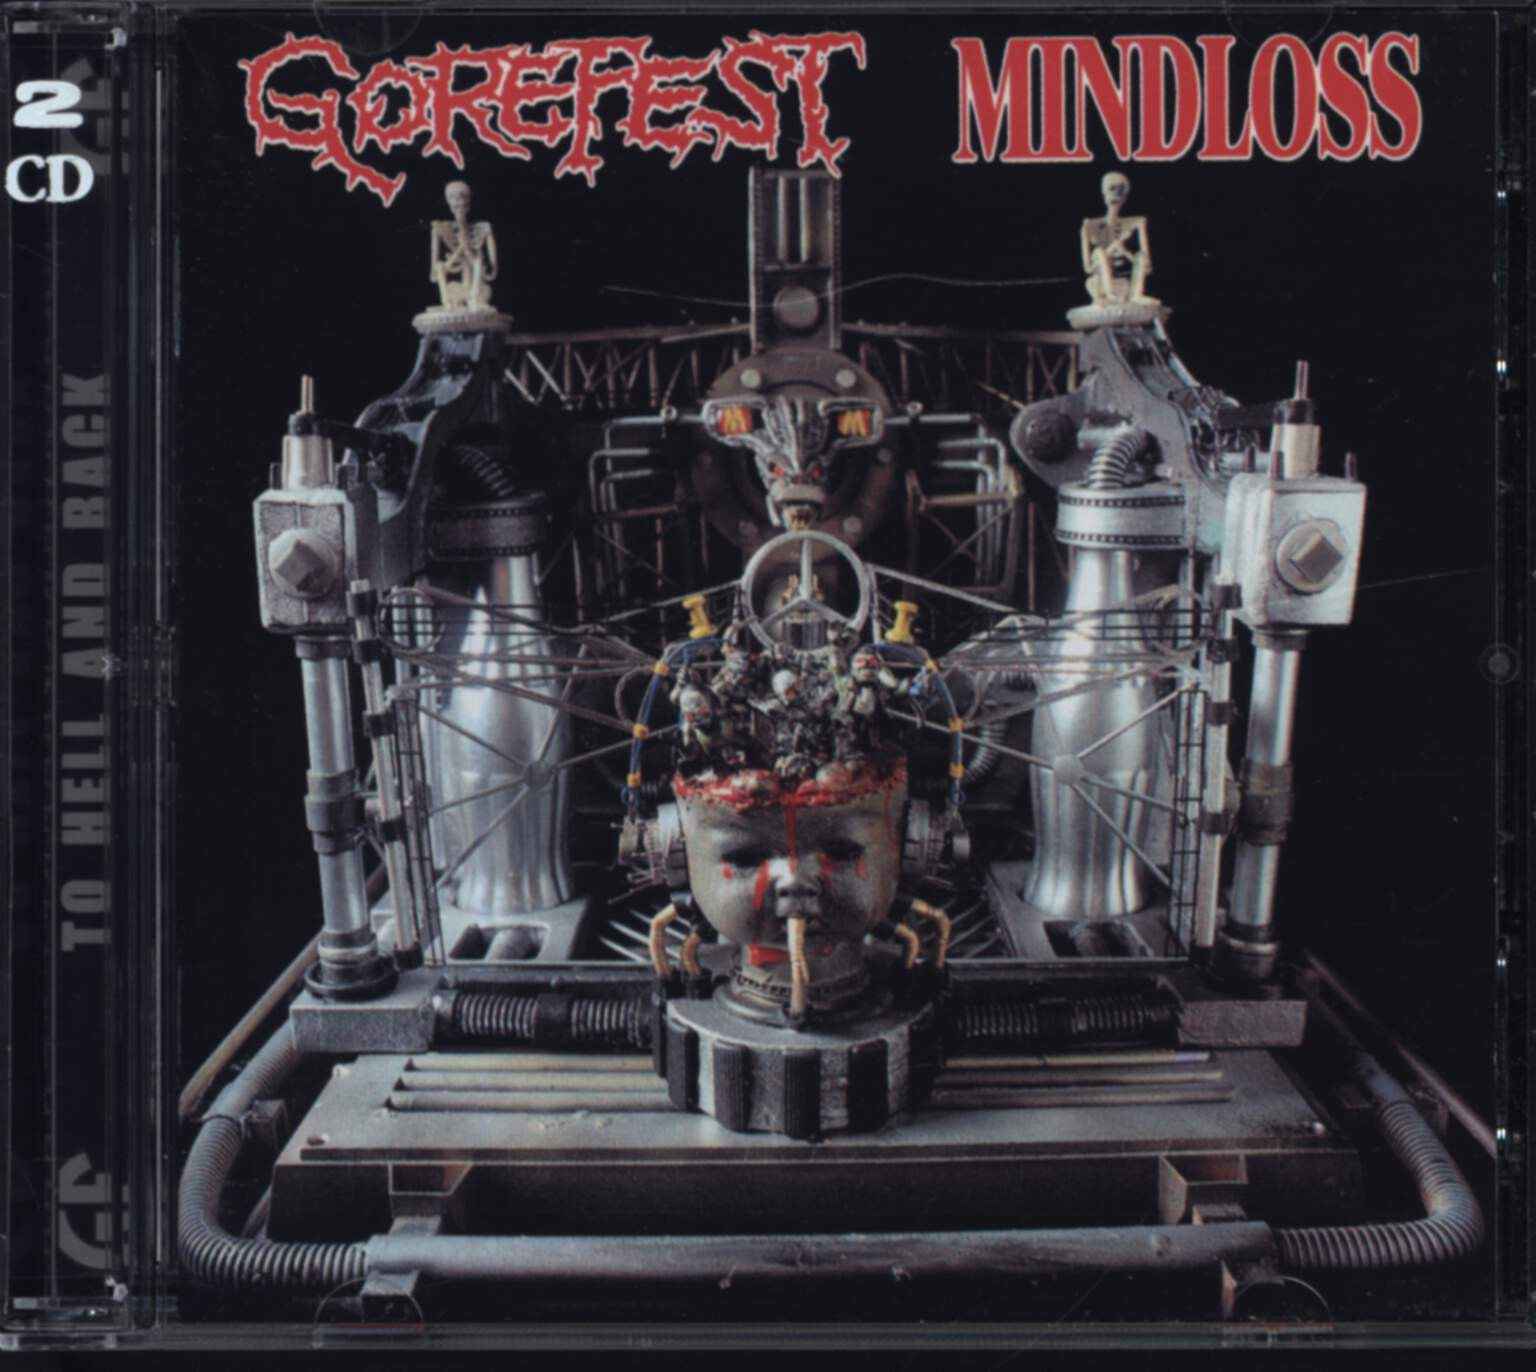 Gorefest: The Ultimate Collection Part 1 - Mindloss & Demos, CD